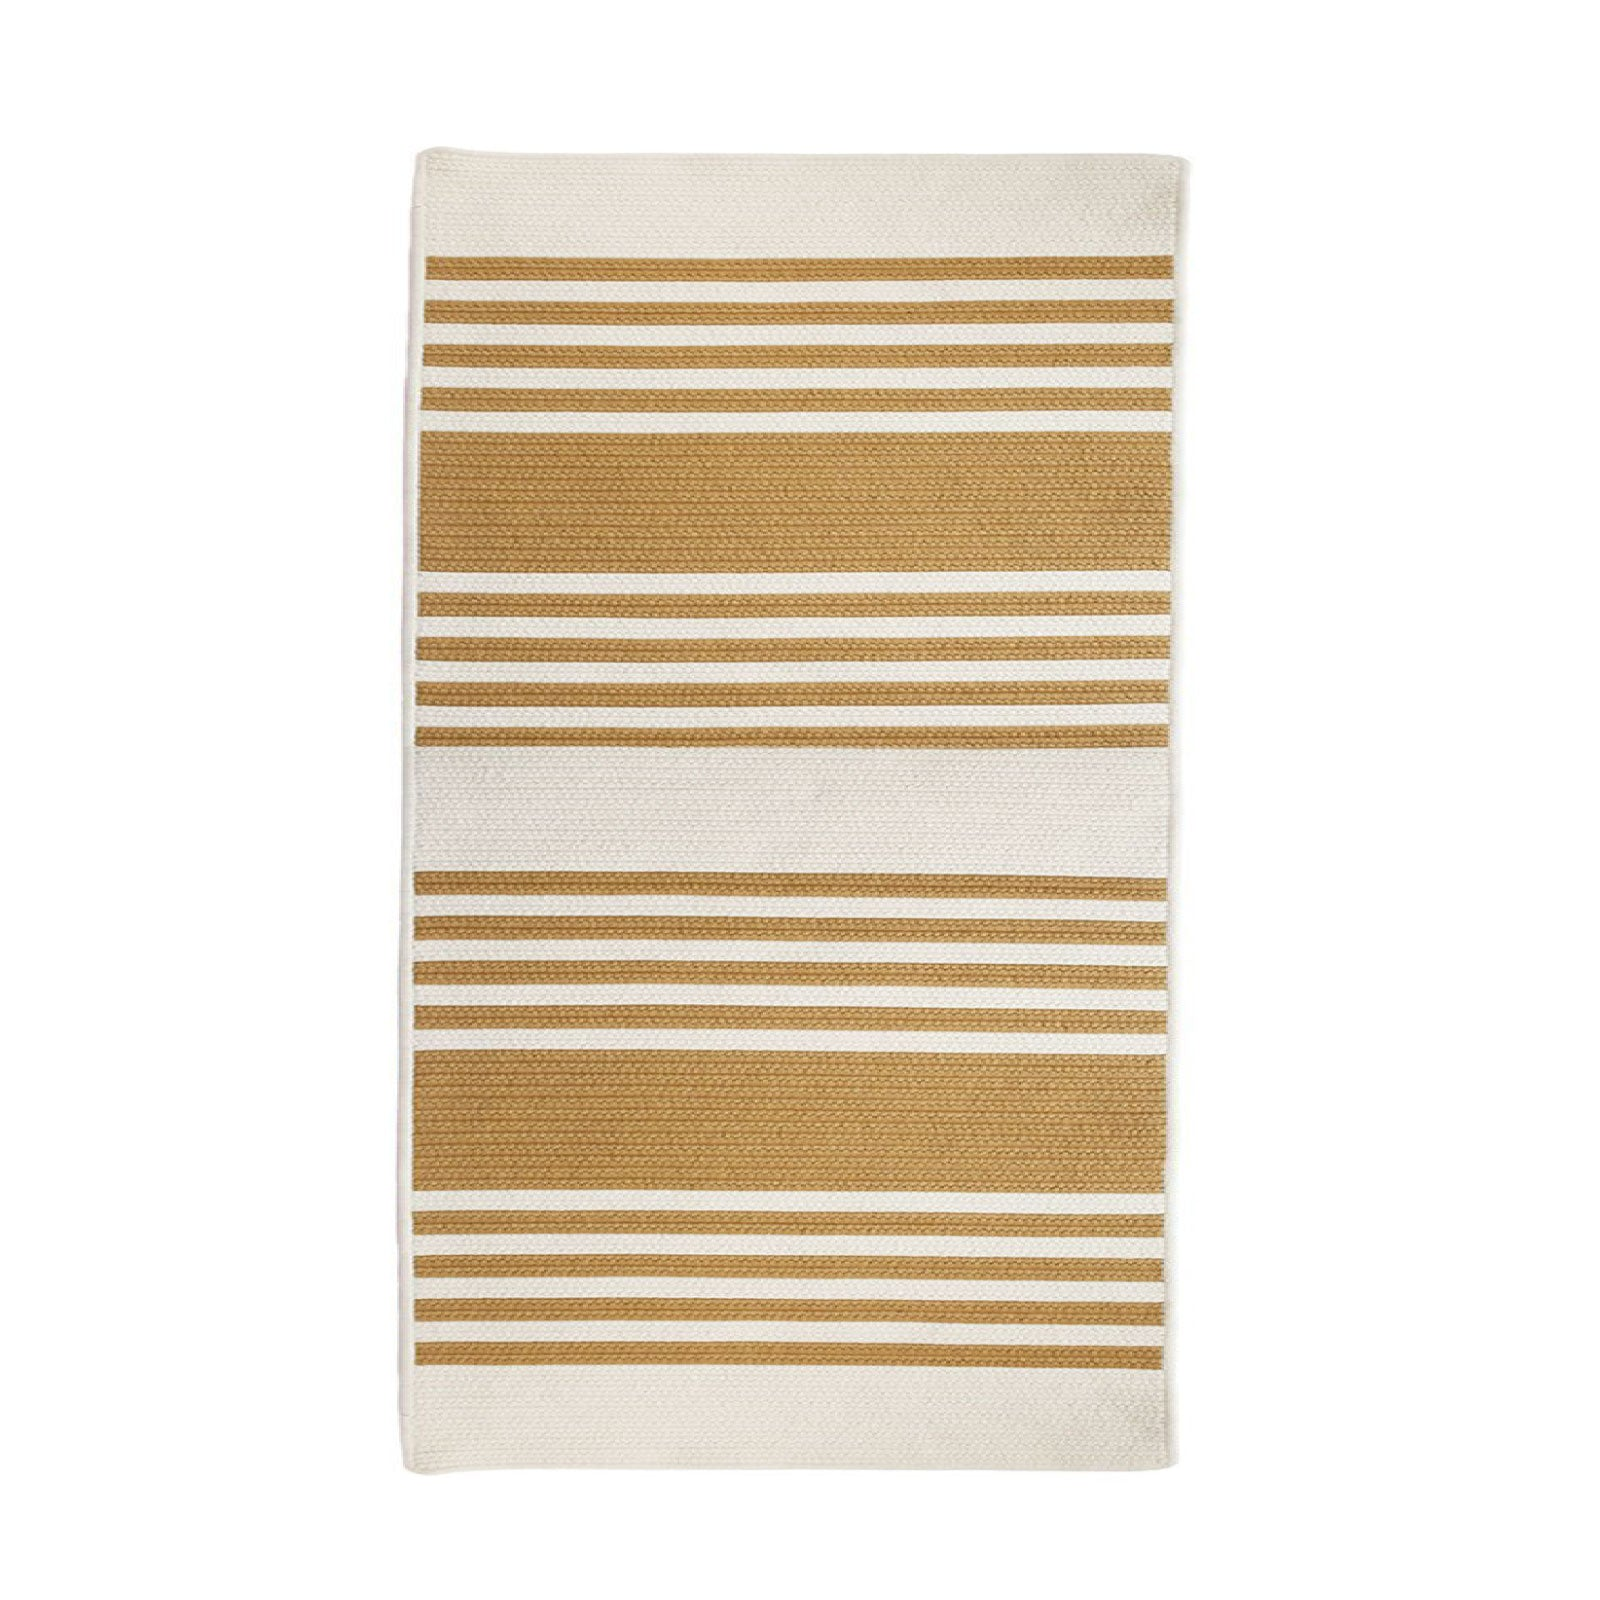 Sailor Rug in Camel